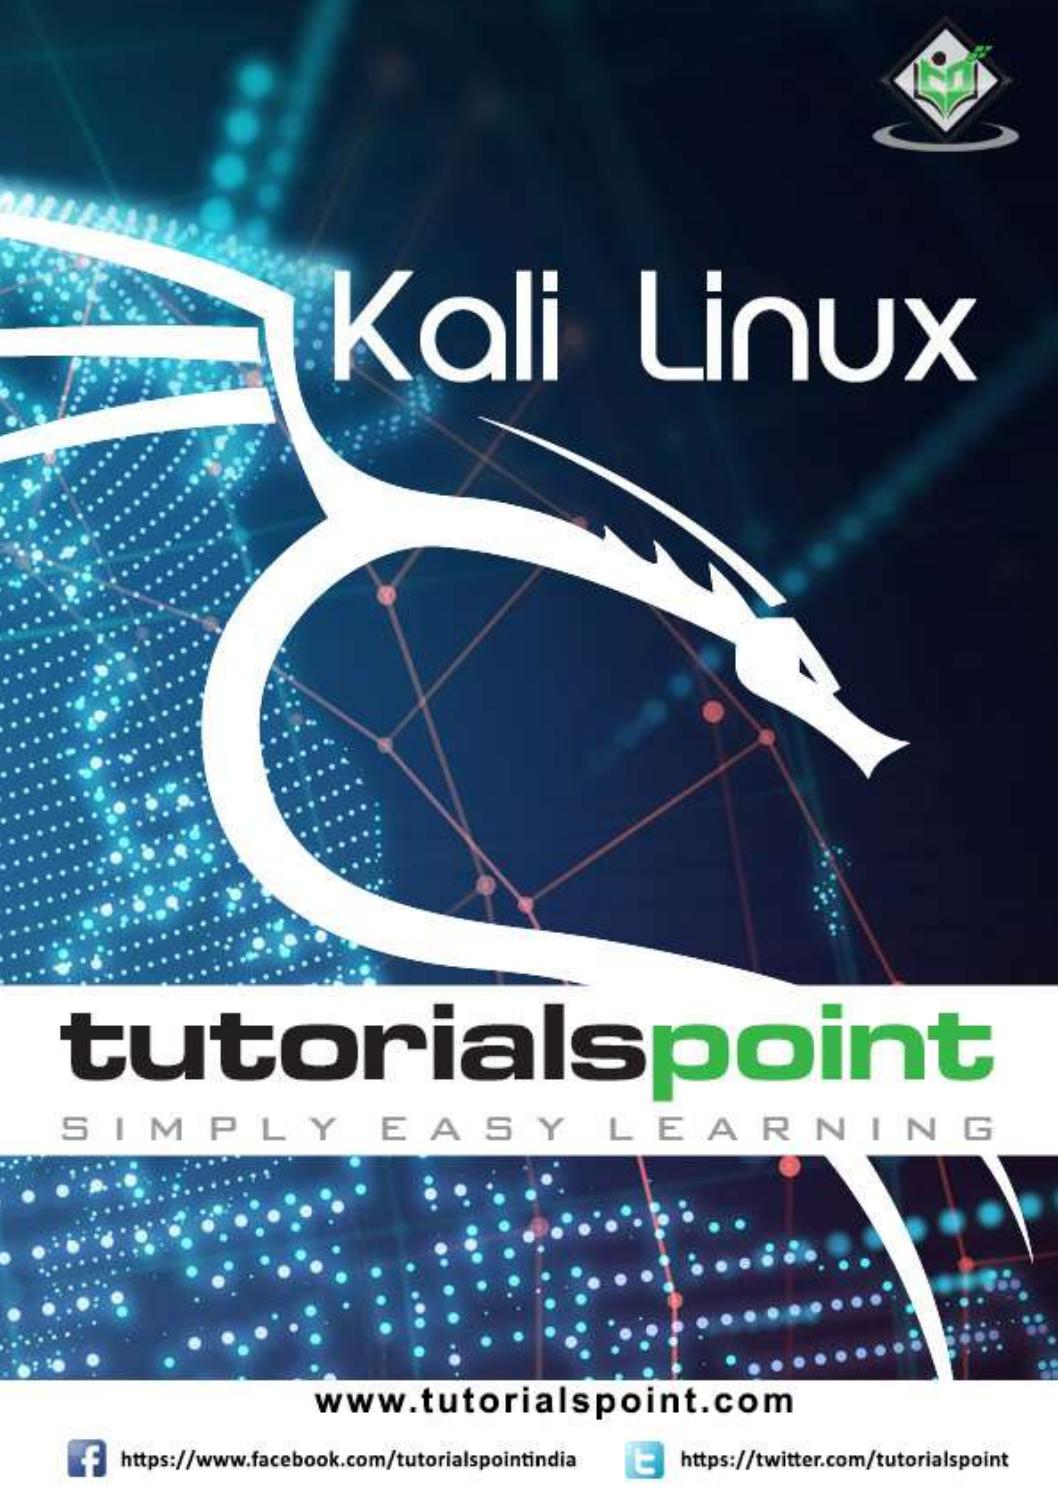 Kali Linux Tutorial by swathi sree - issuu